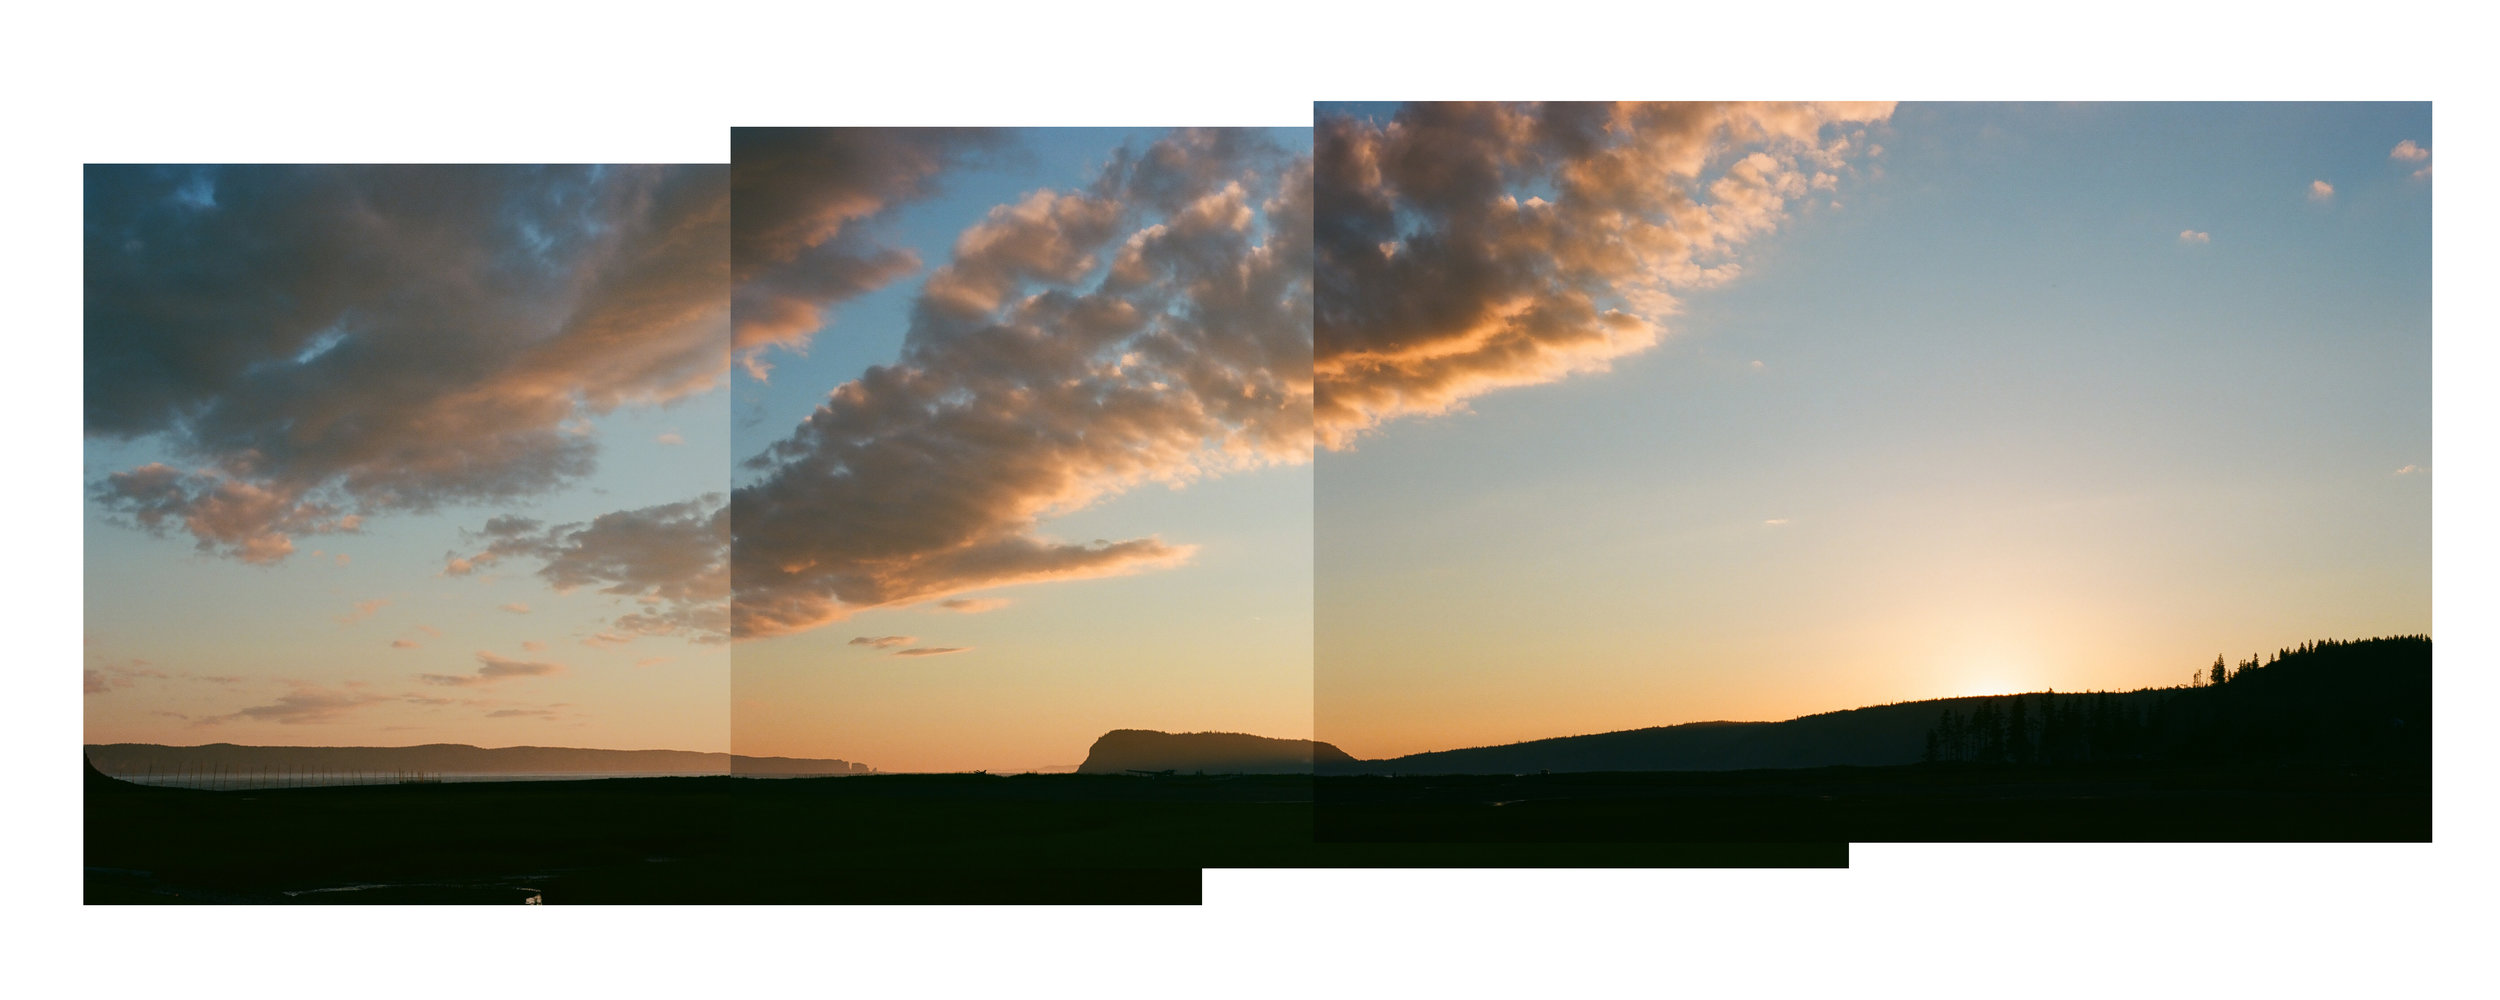 Pano Created using 35mm film photos of the Sunset over Partridge Island